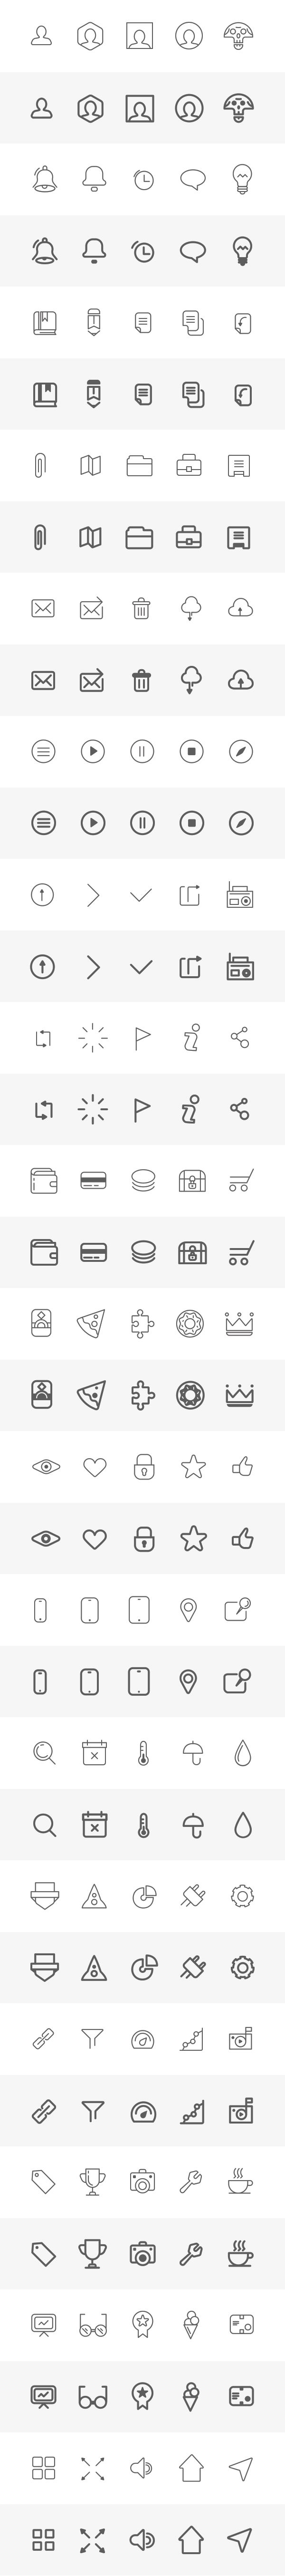 Wireframe icons